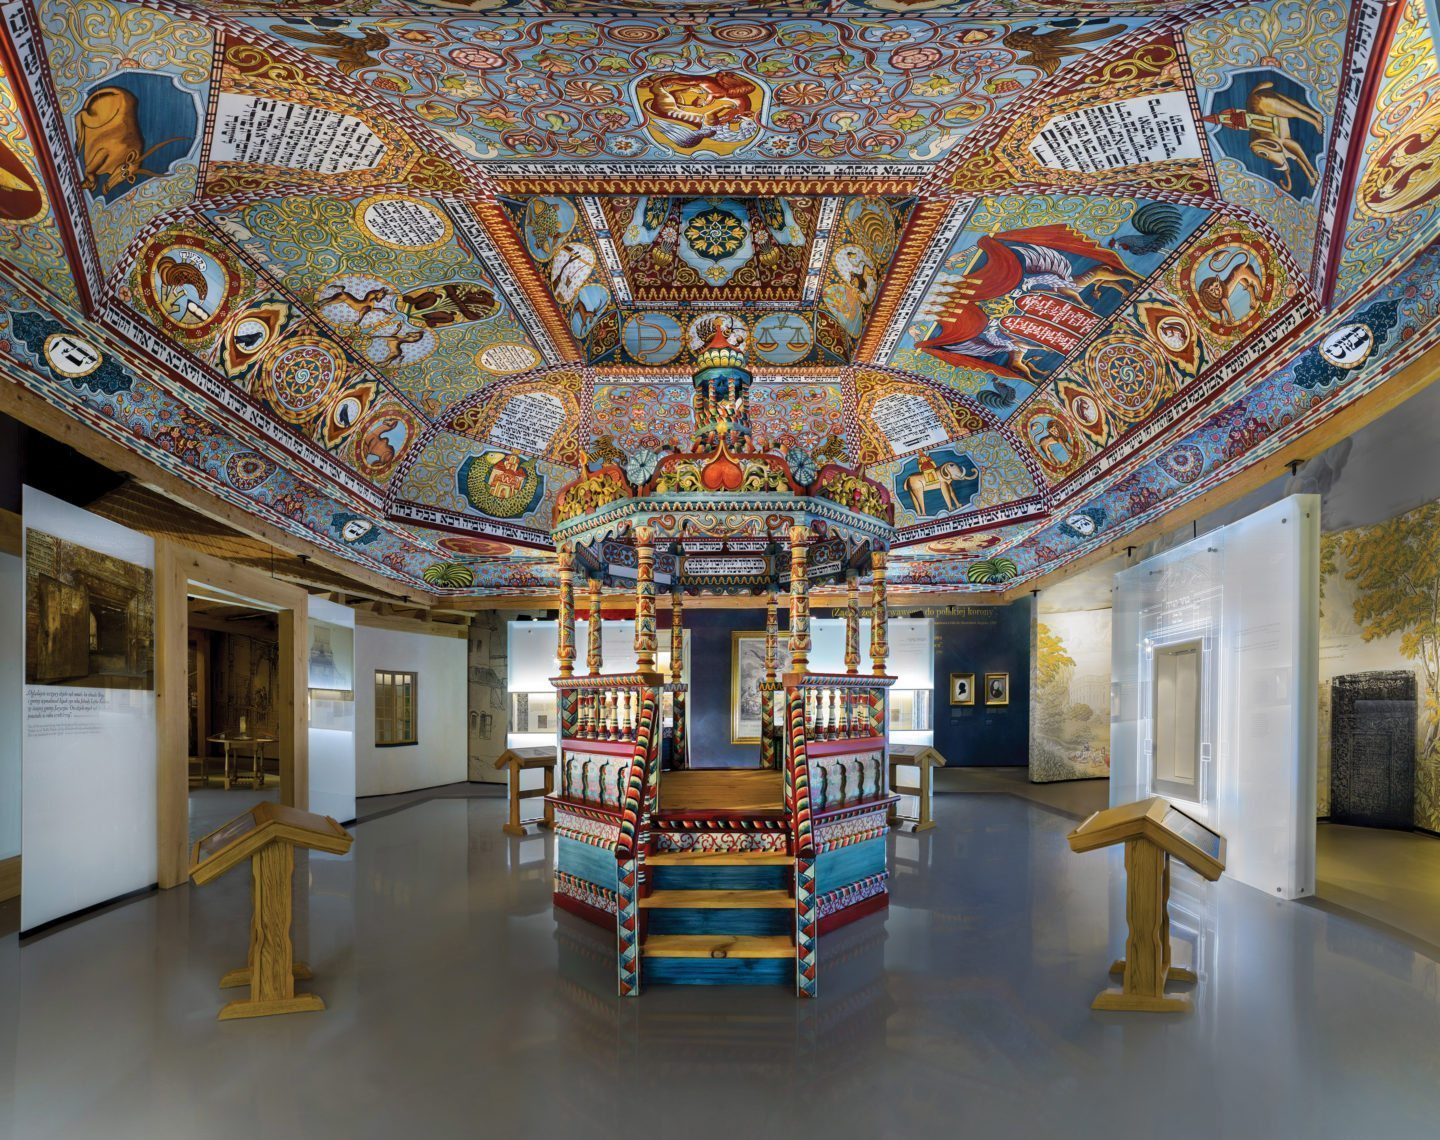 Polish Historical Memory and the New Museums